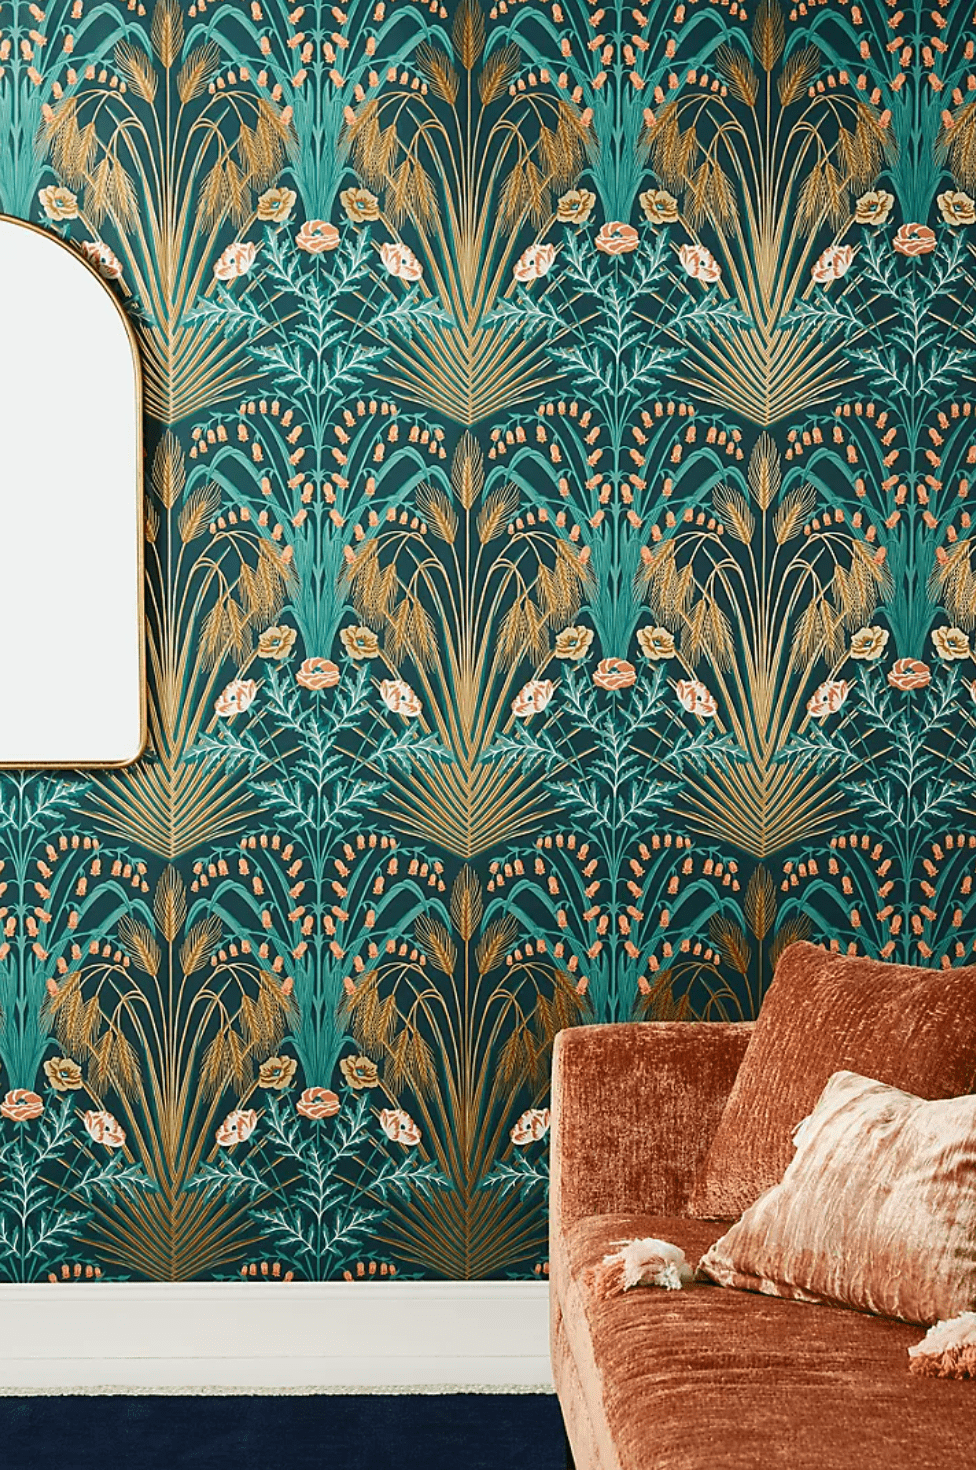 Statement-making floral wallpaper, currently for sale at Anthropologie